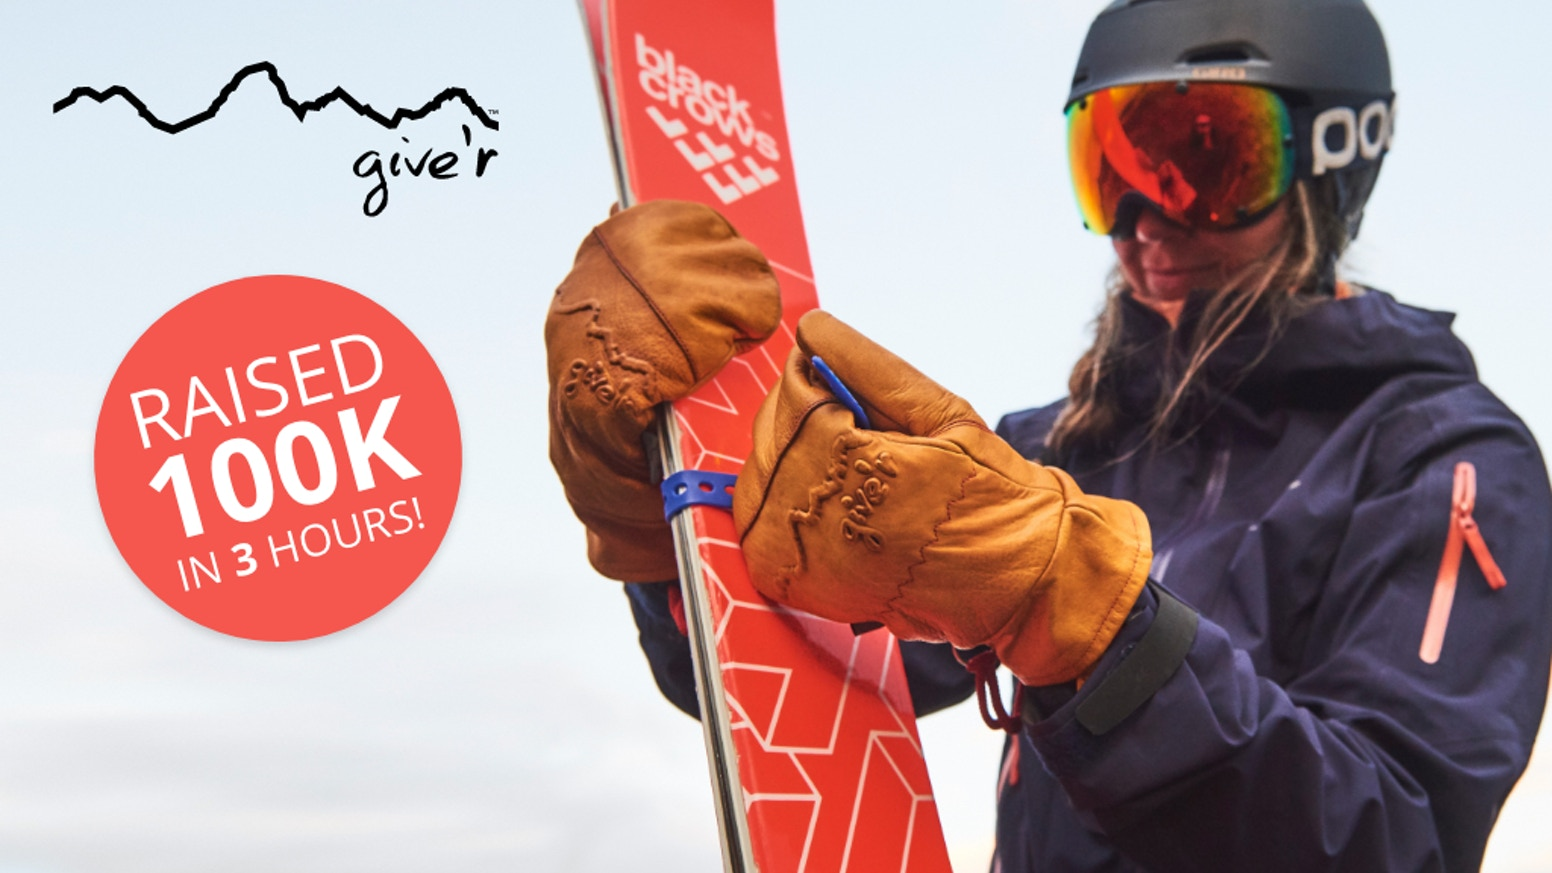 The warmest, 100% waterproof, all-leather mitten. Give'r tested for protection & longevity. Own your frontier & give it your all!